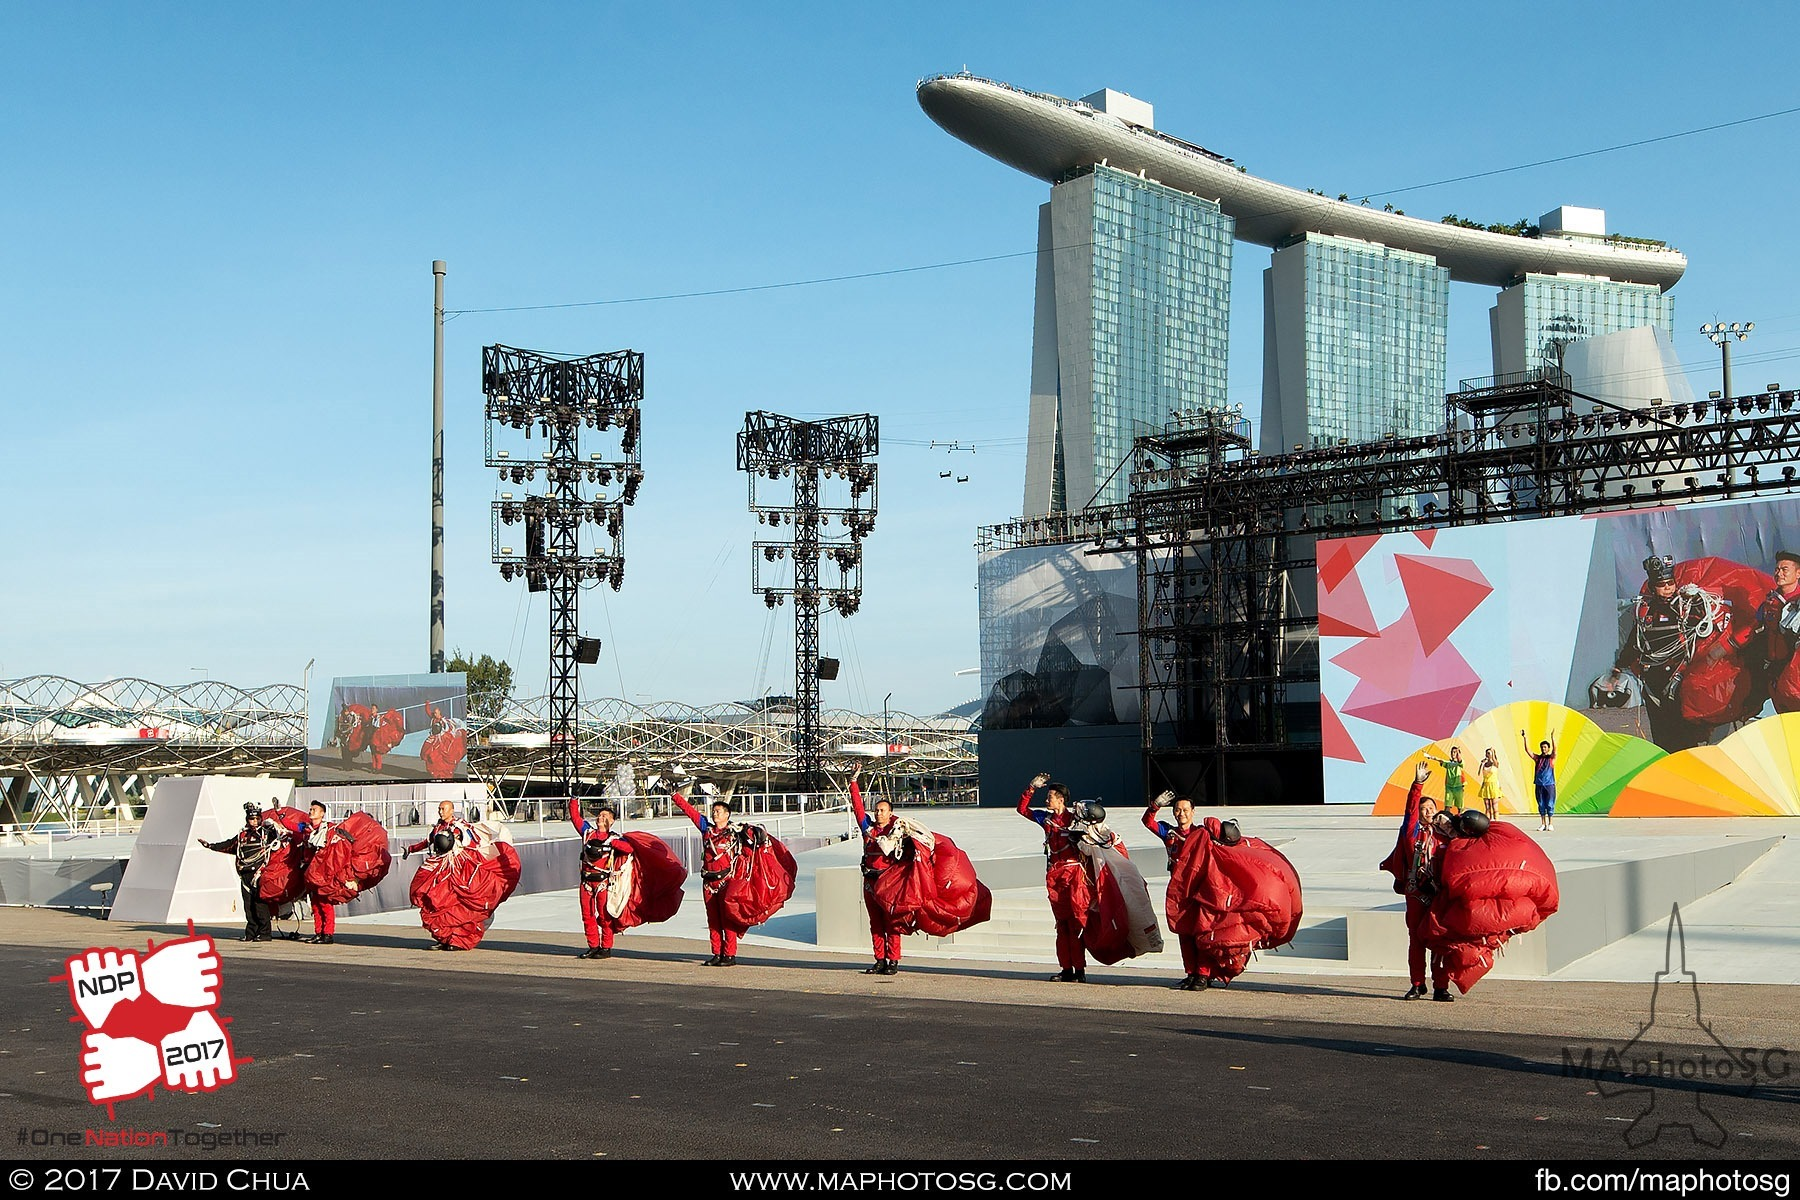 2. Members of the Red Lions team waves to the crowd after they have landed on the Floating Platform.